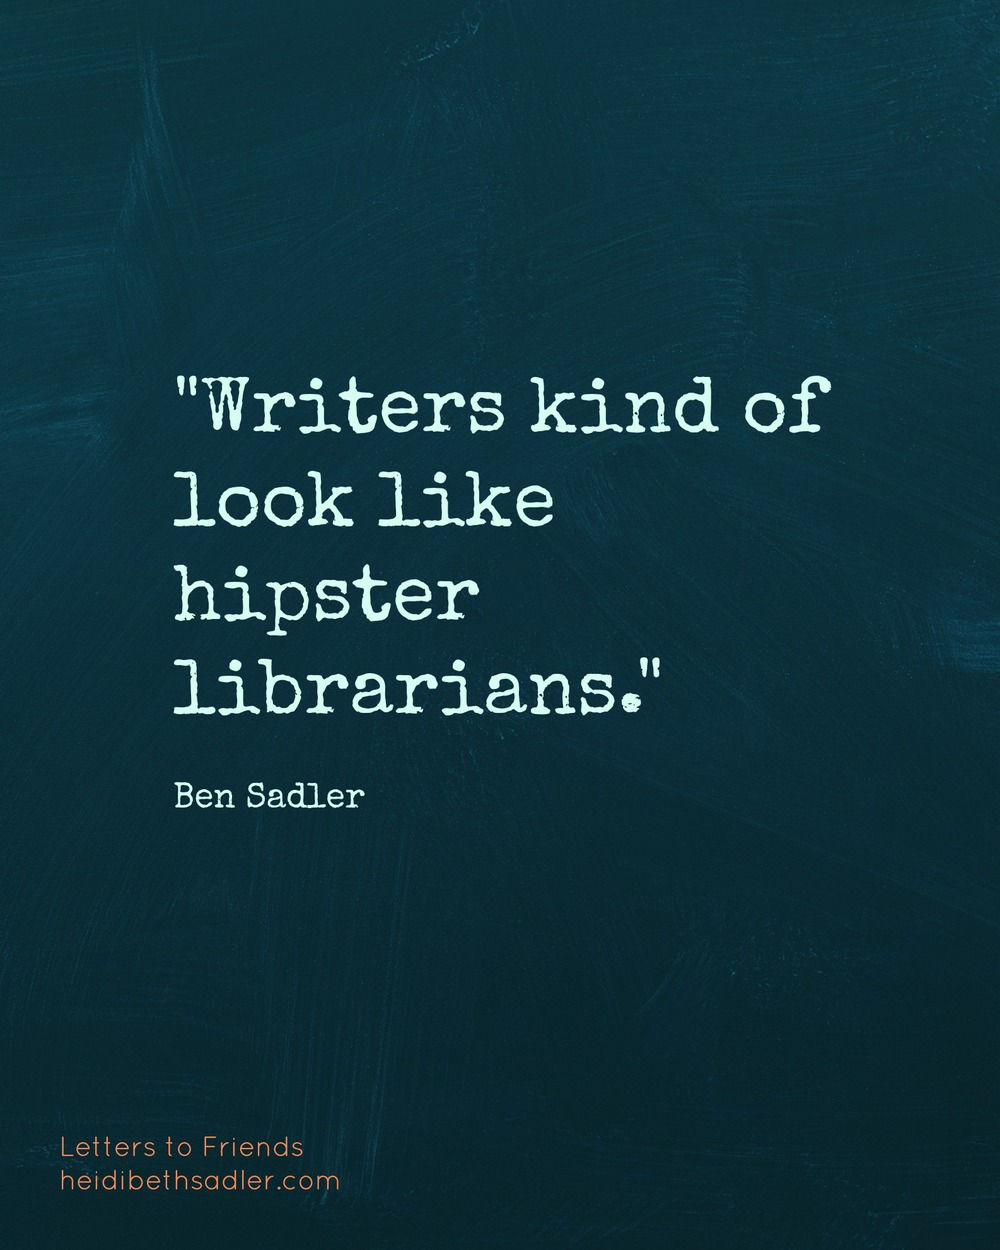 WritersLookLikeHipsterLibrarians